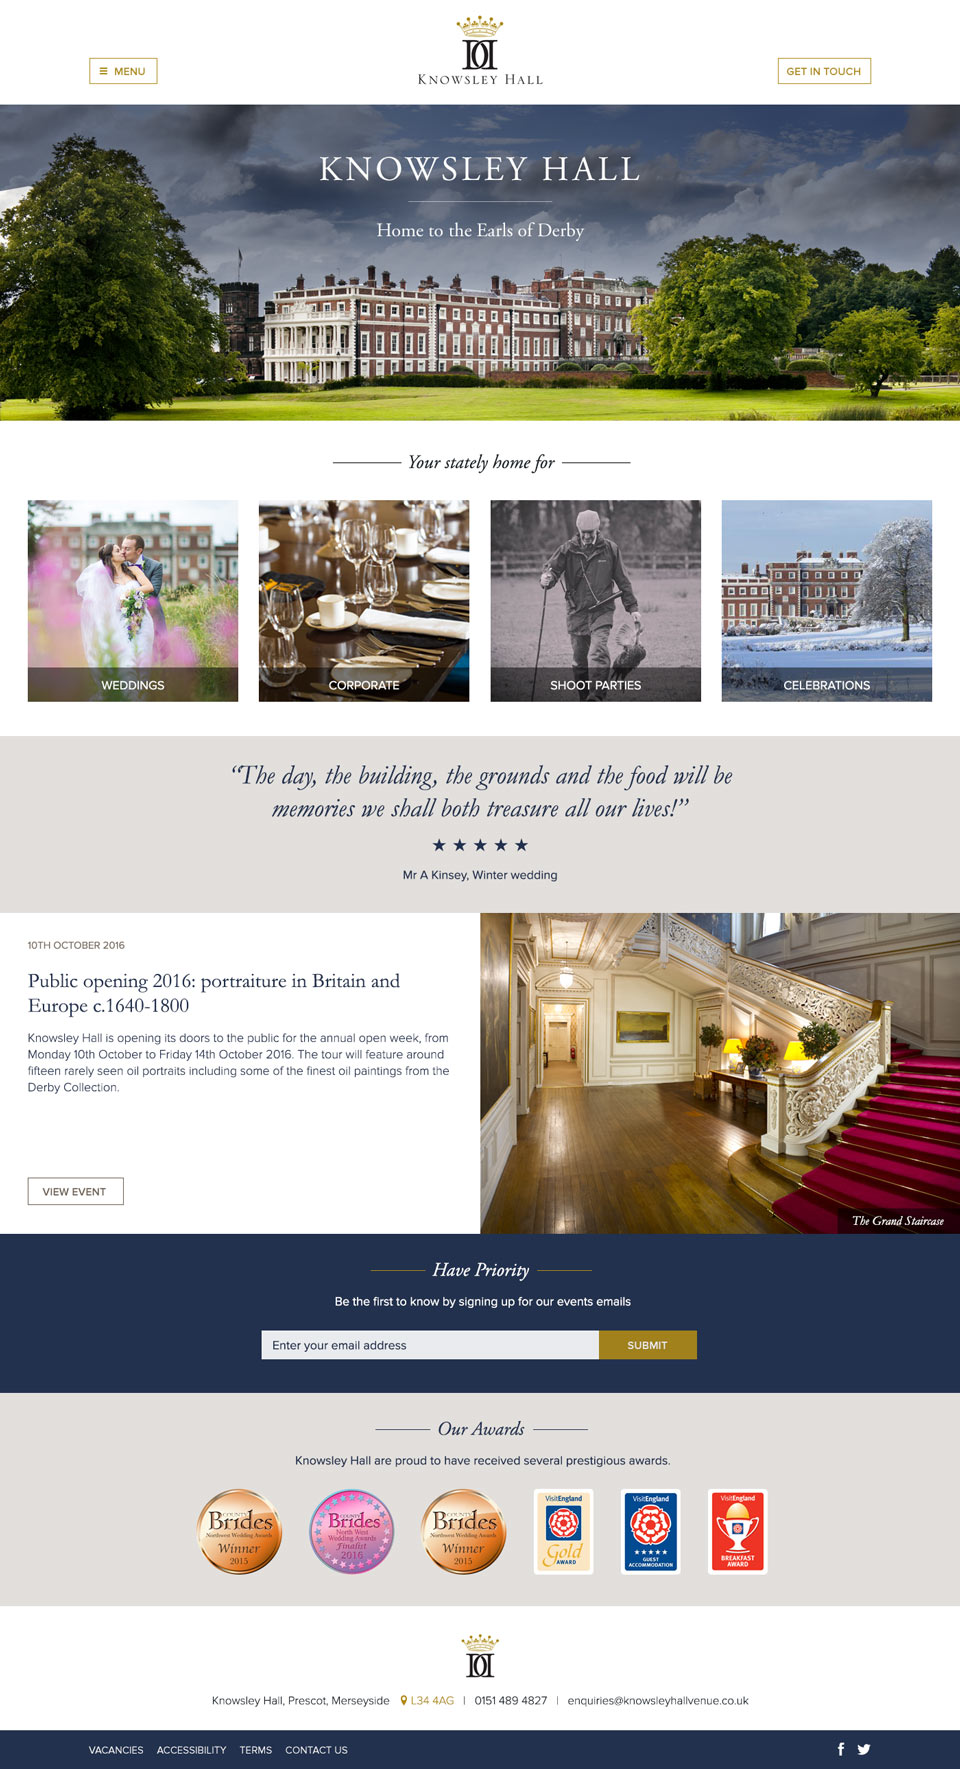 Knowsley Hall website